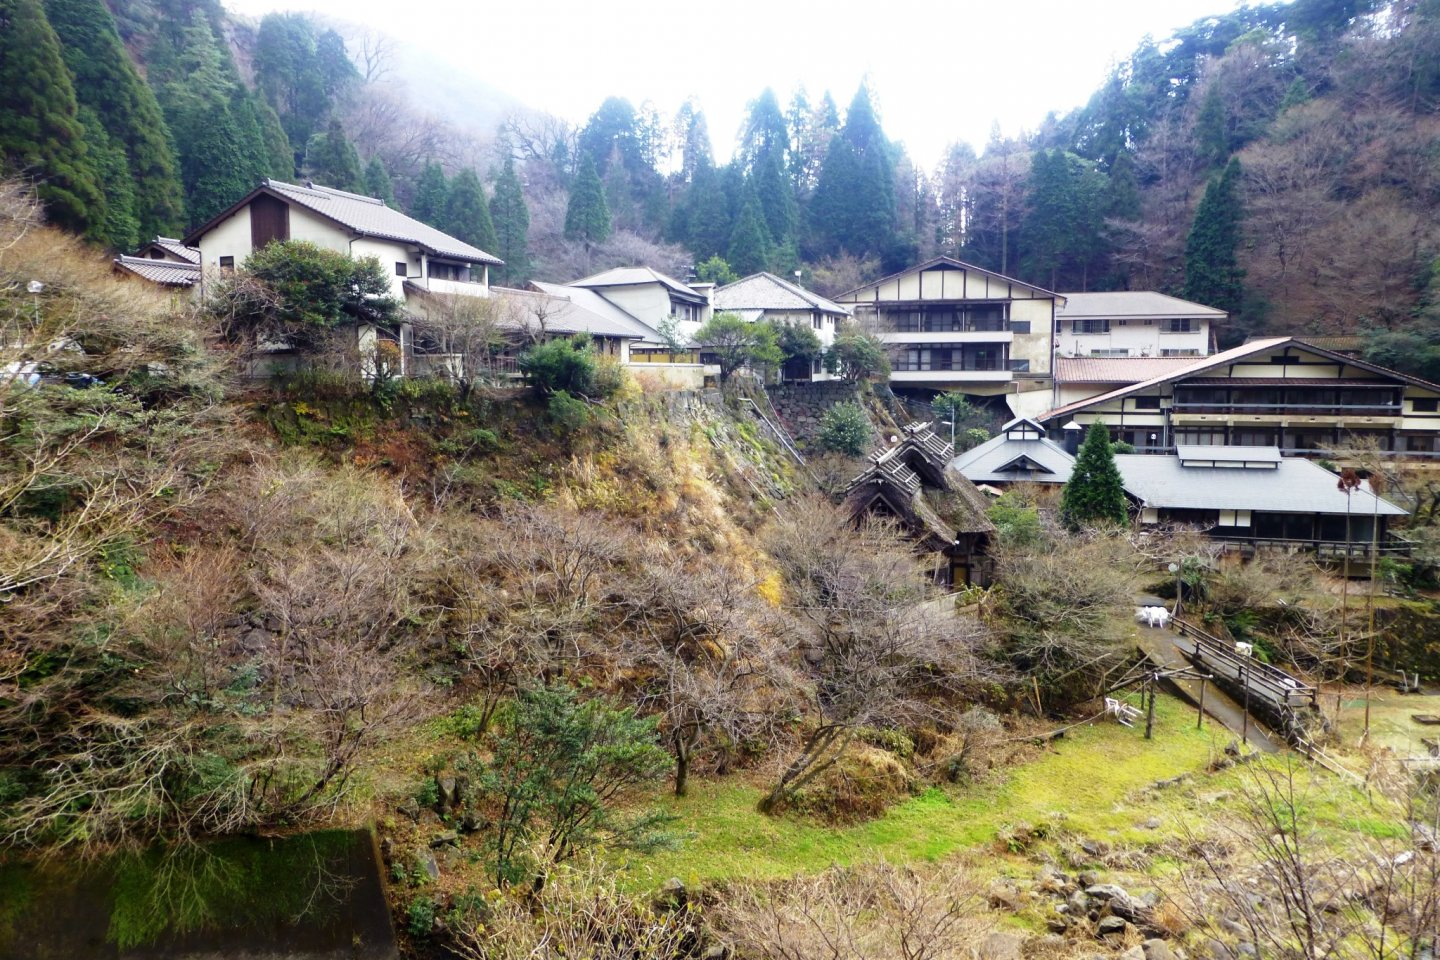 Ryokan Yamaguchi is one of only two ryokan in the Tarutama area